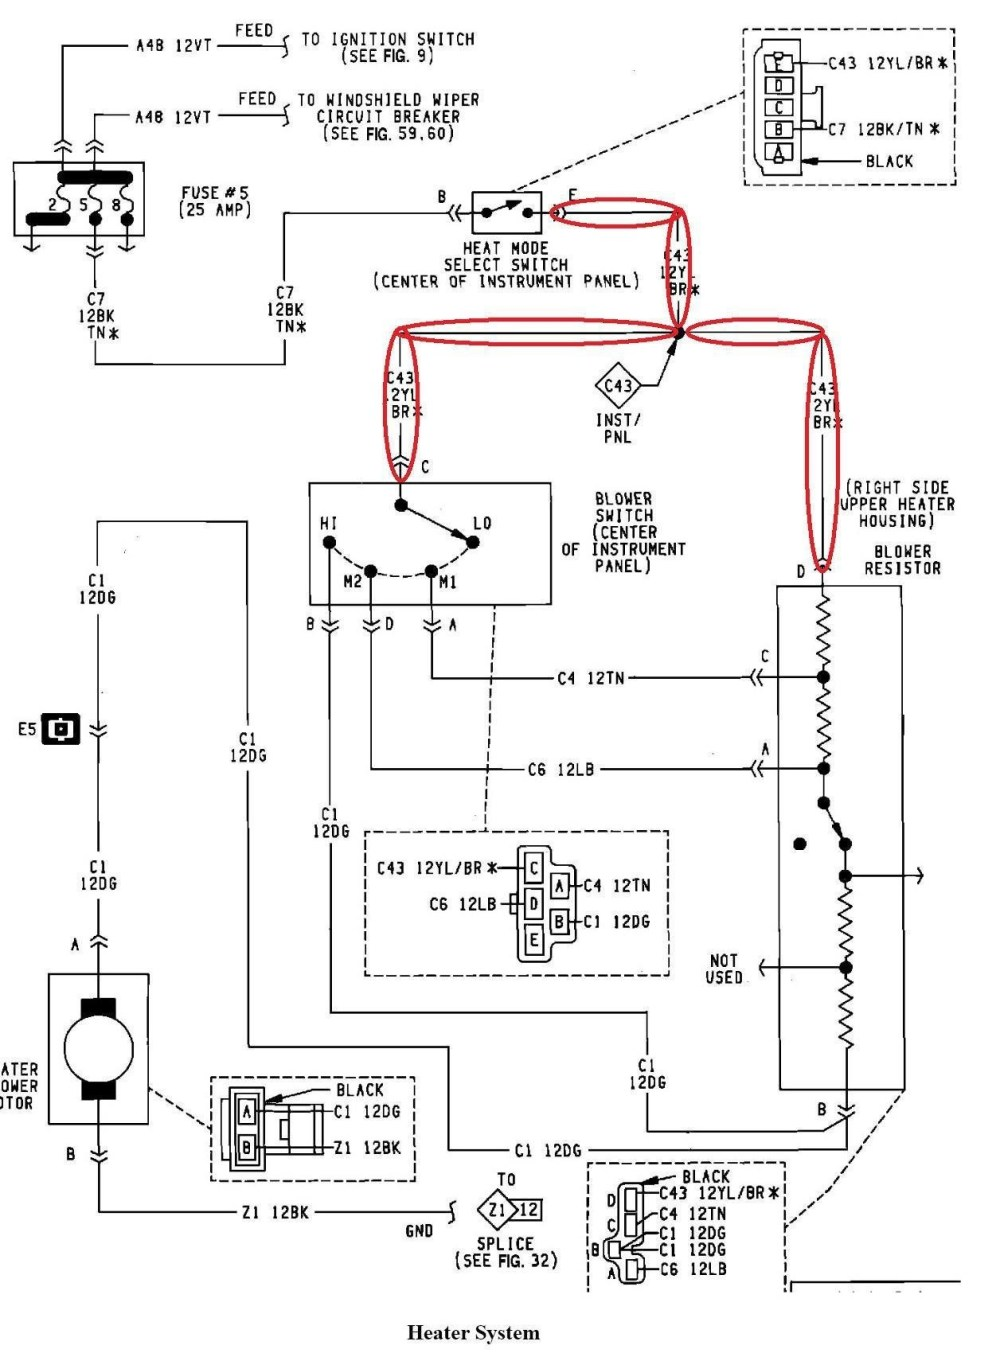 medium resolution of 1989 ezgo golf cart battery wiring diagram wiring diagram 36 volt ezgo wiring diagram schema diagram